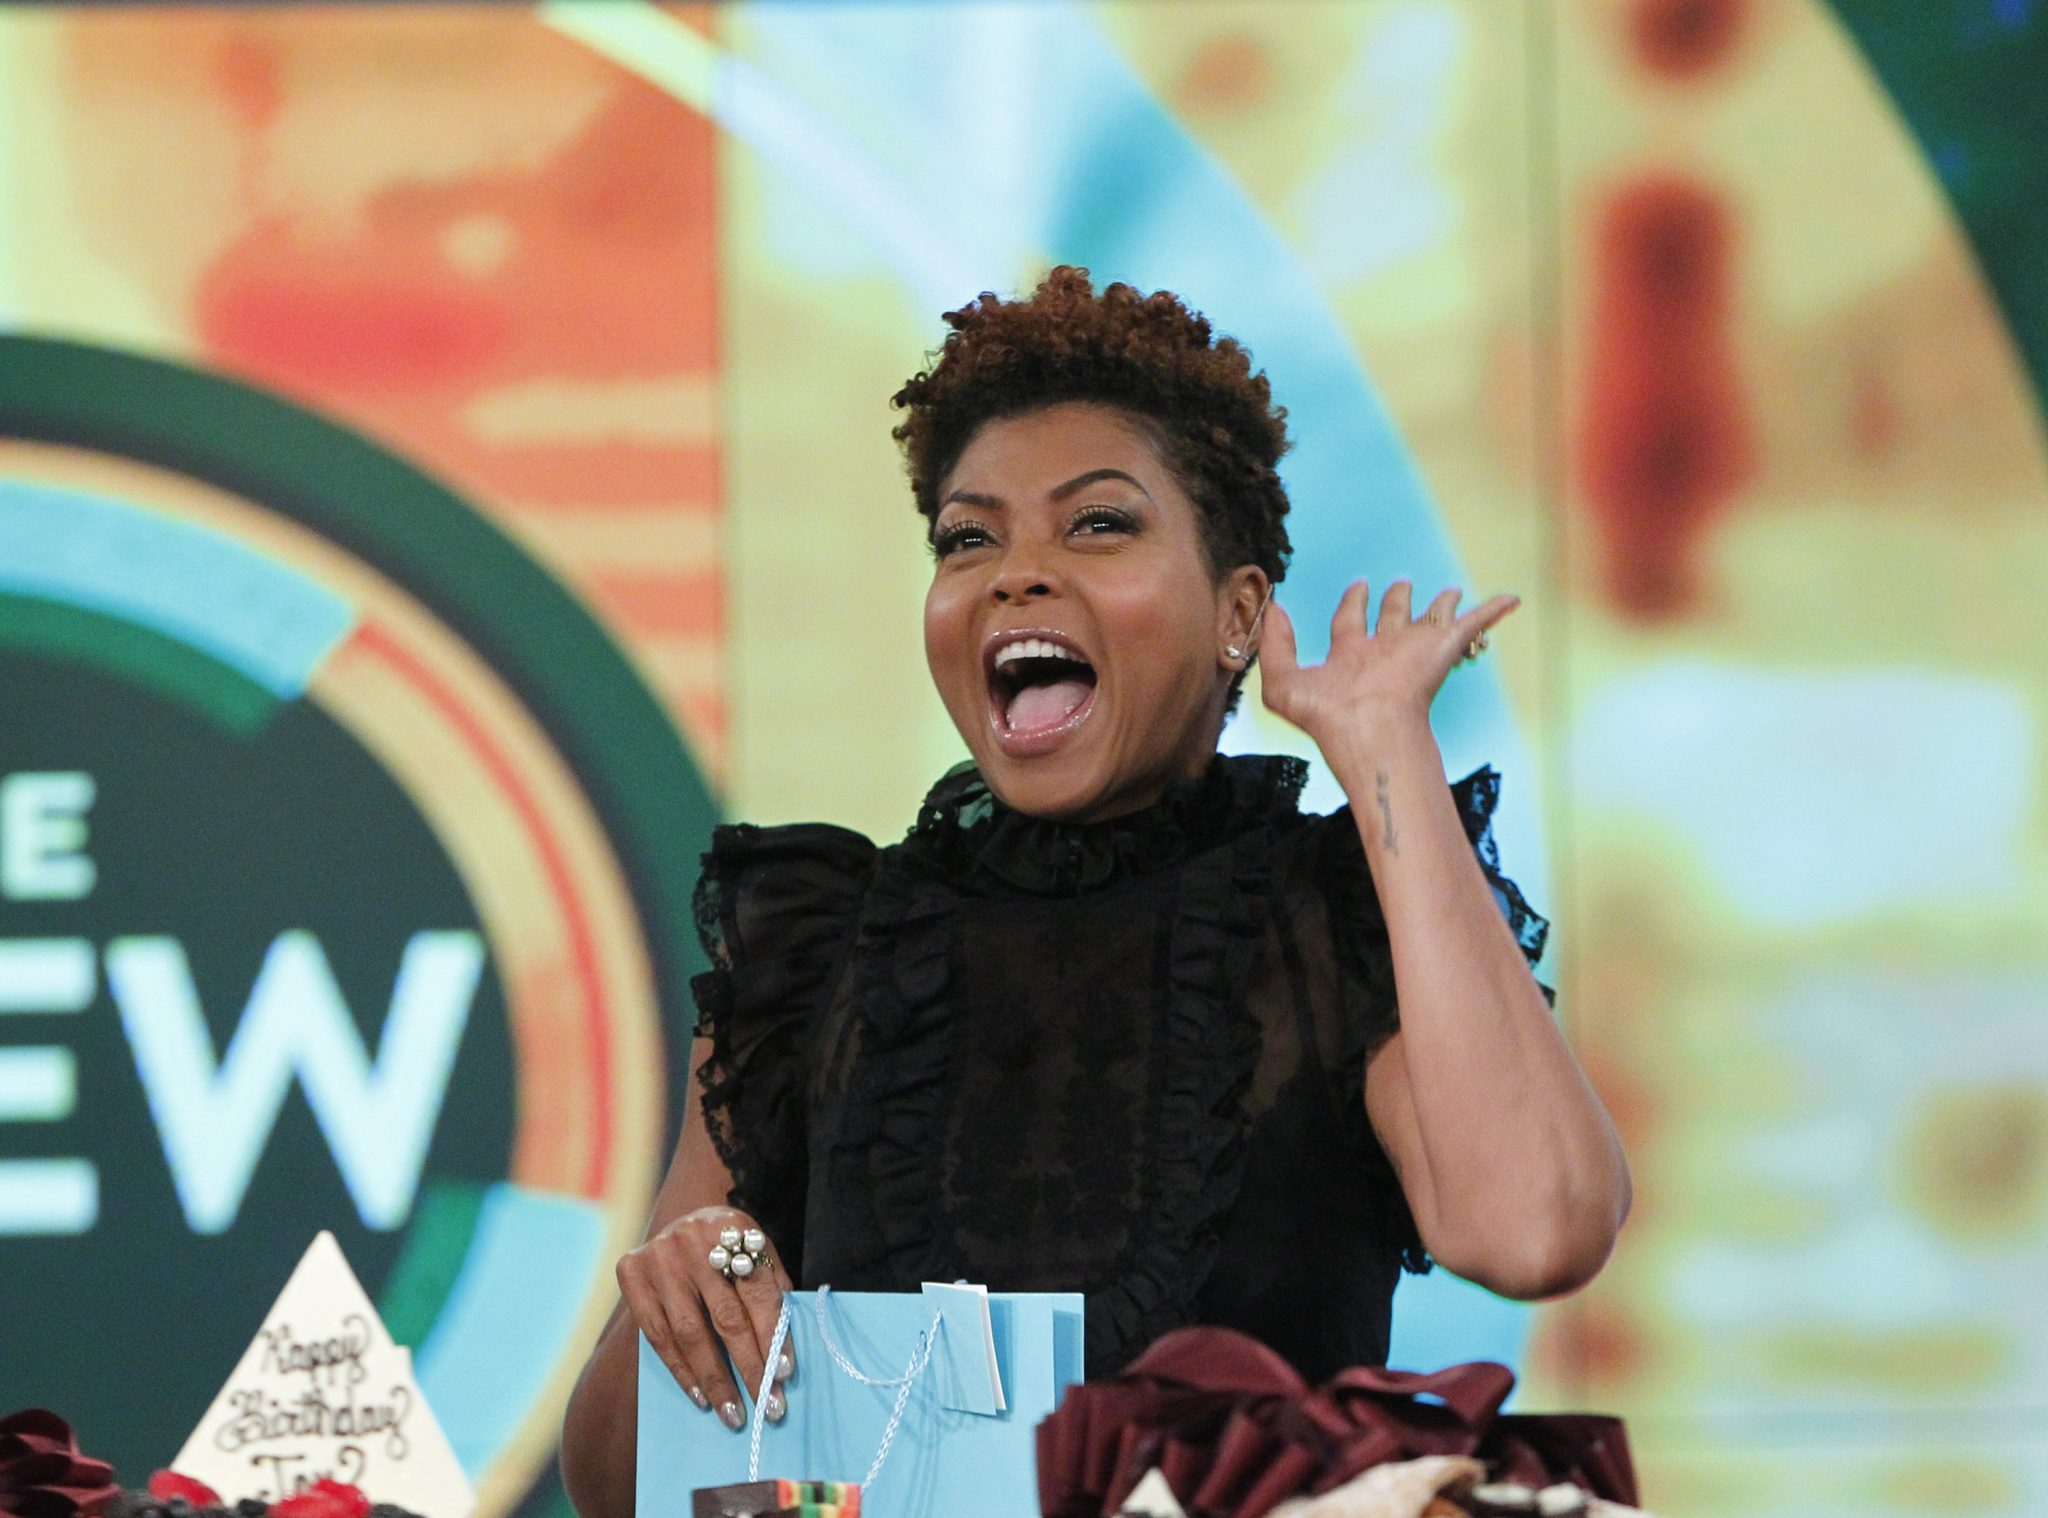 In Case You Missed It: Taraji P. Henson On The View